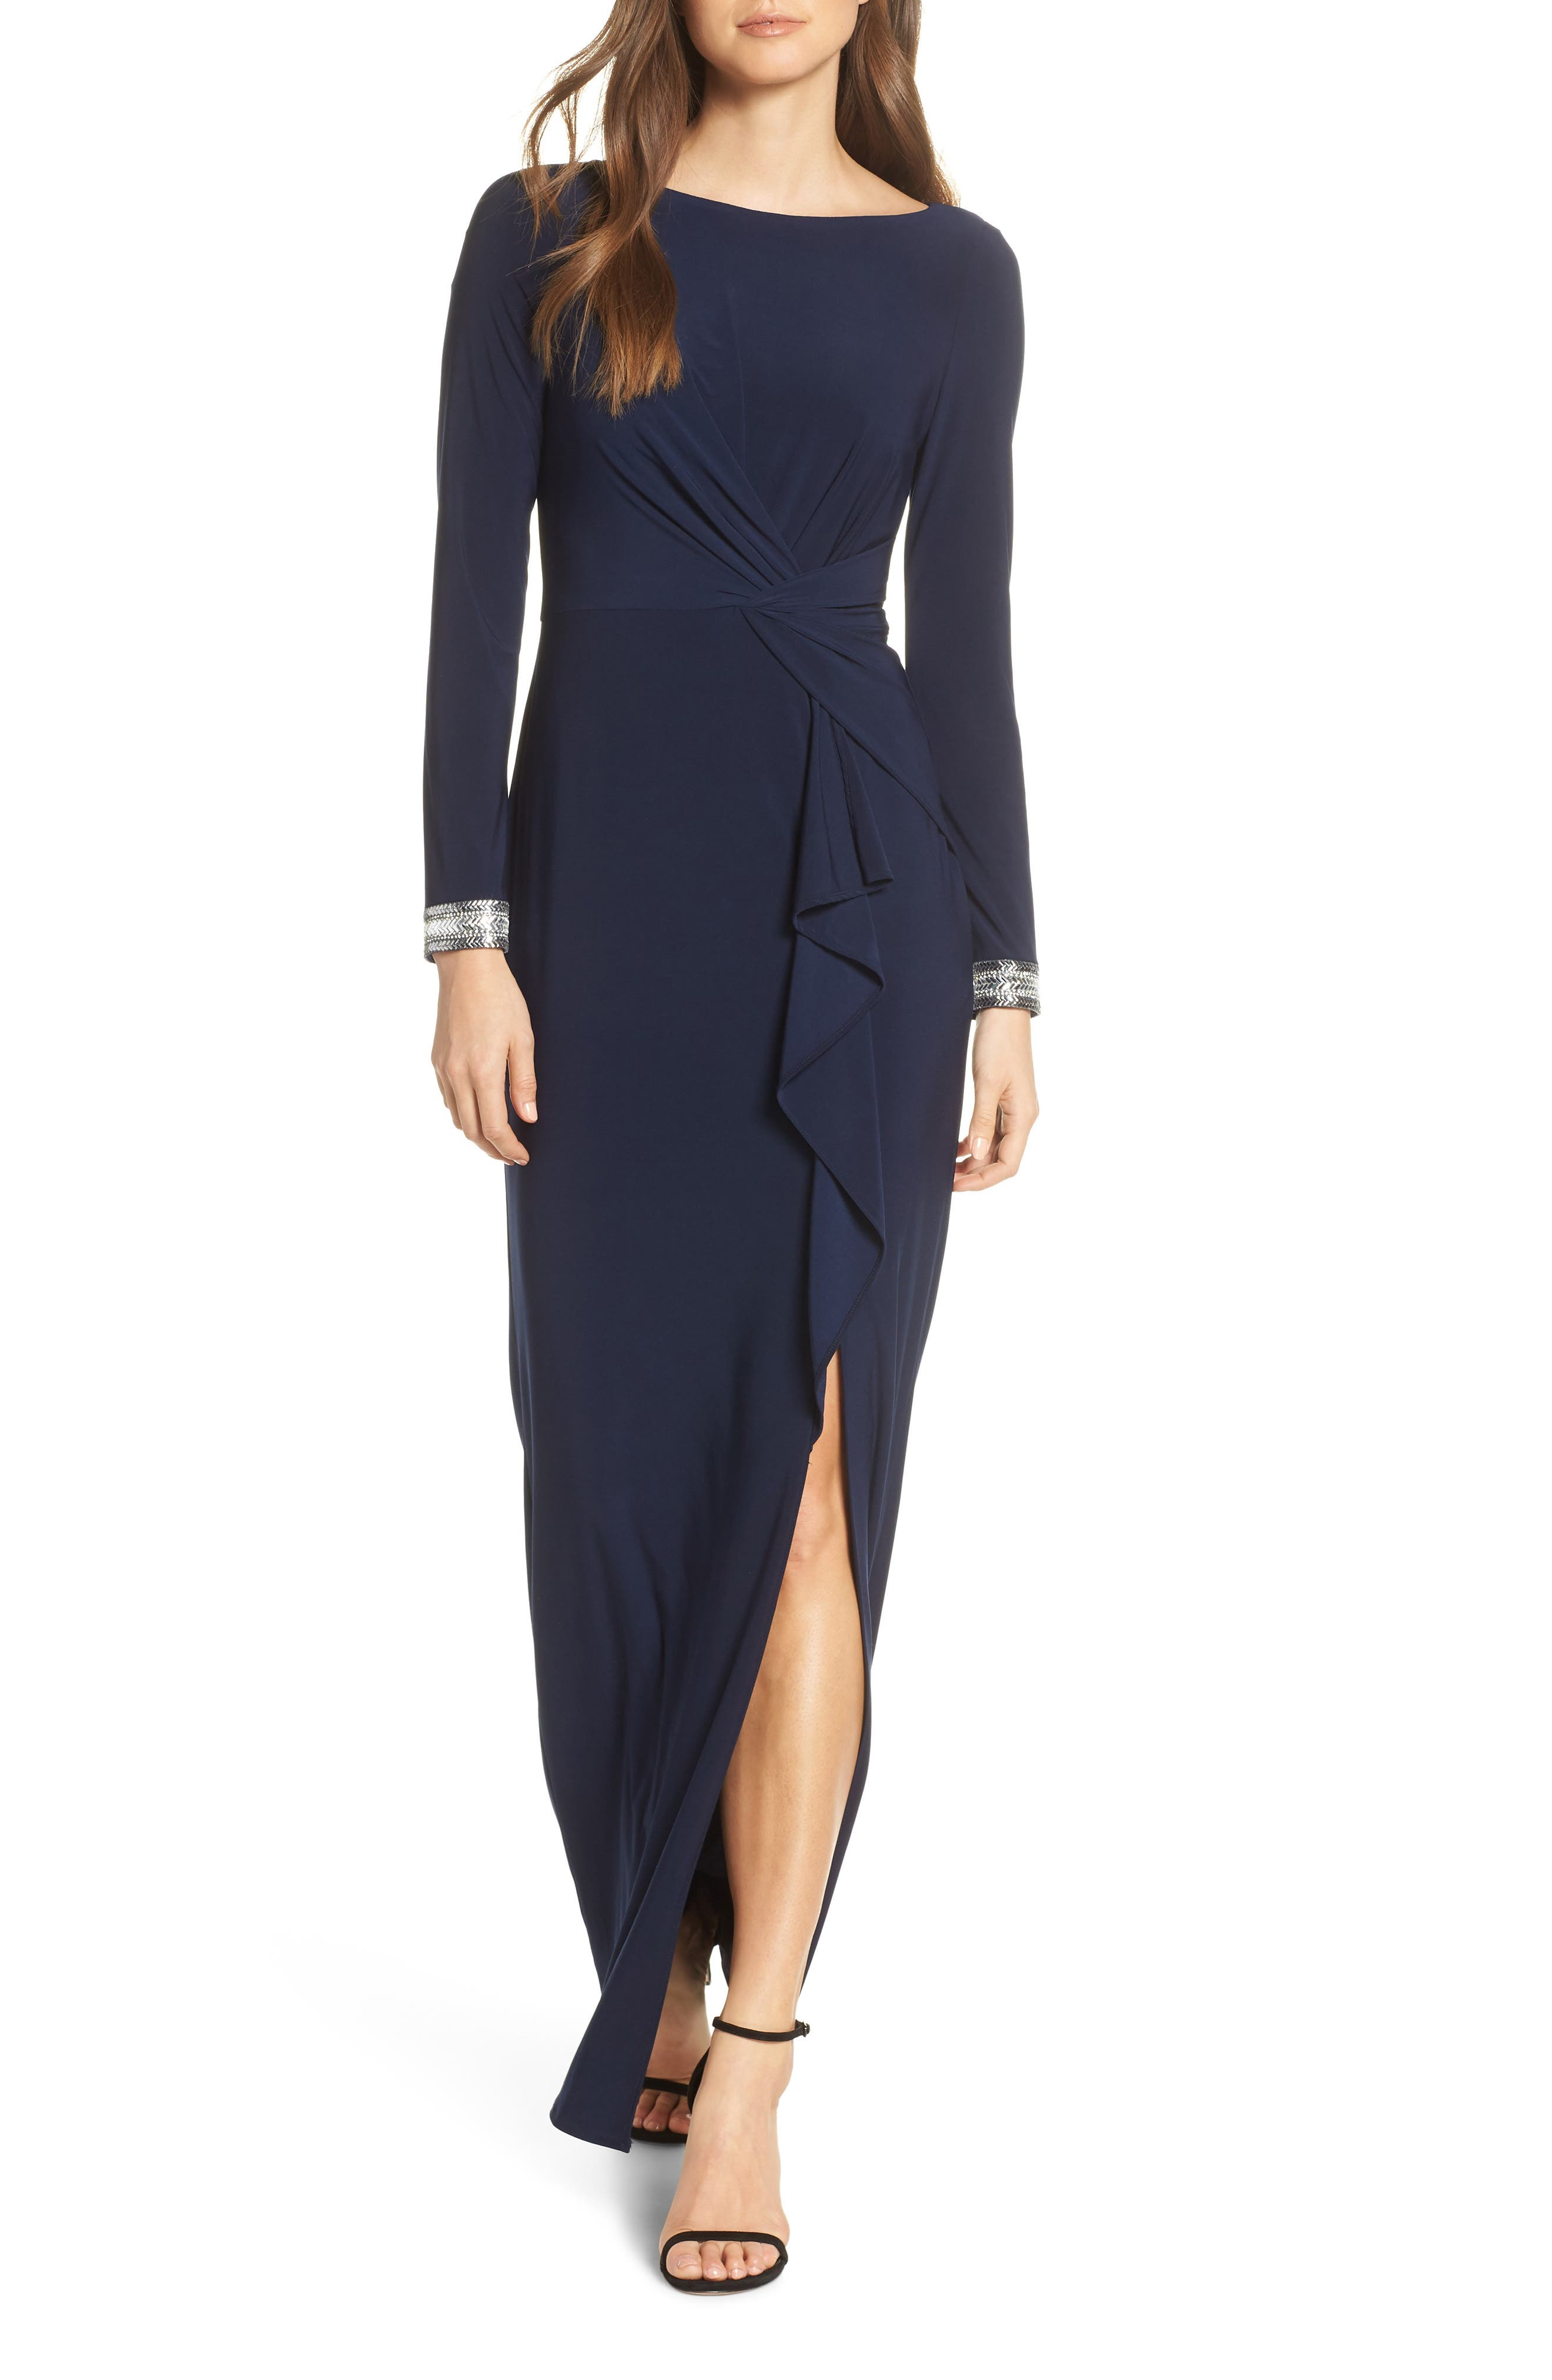 VINCE CAMUTO, Beaded Cuff Ruched Jersey Dress, Main thumbnail 1, color, NAVY